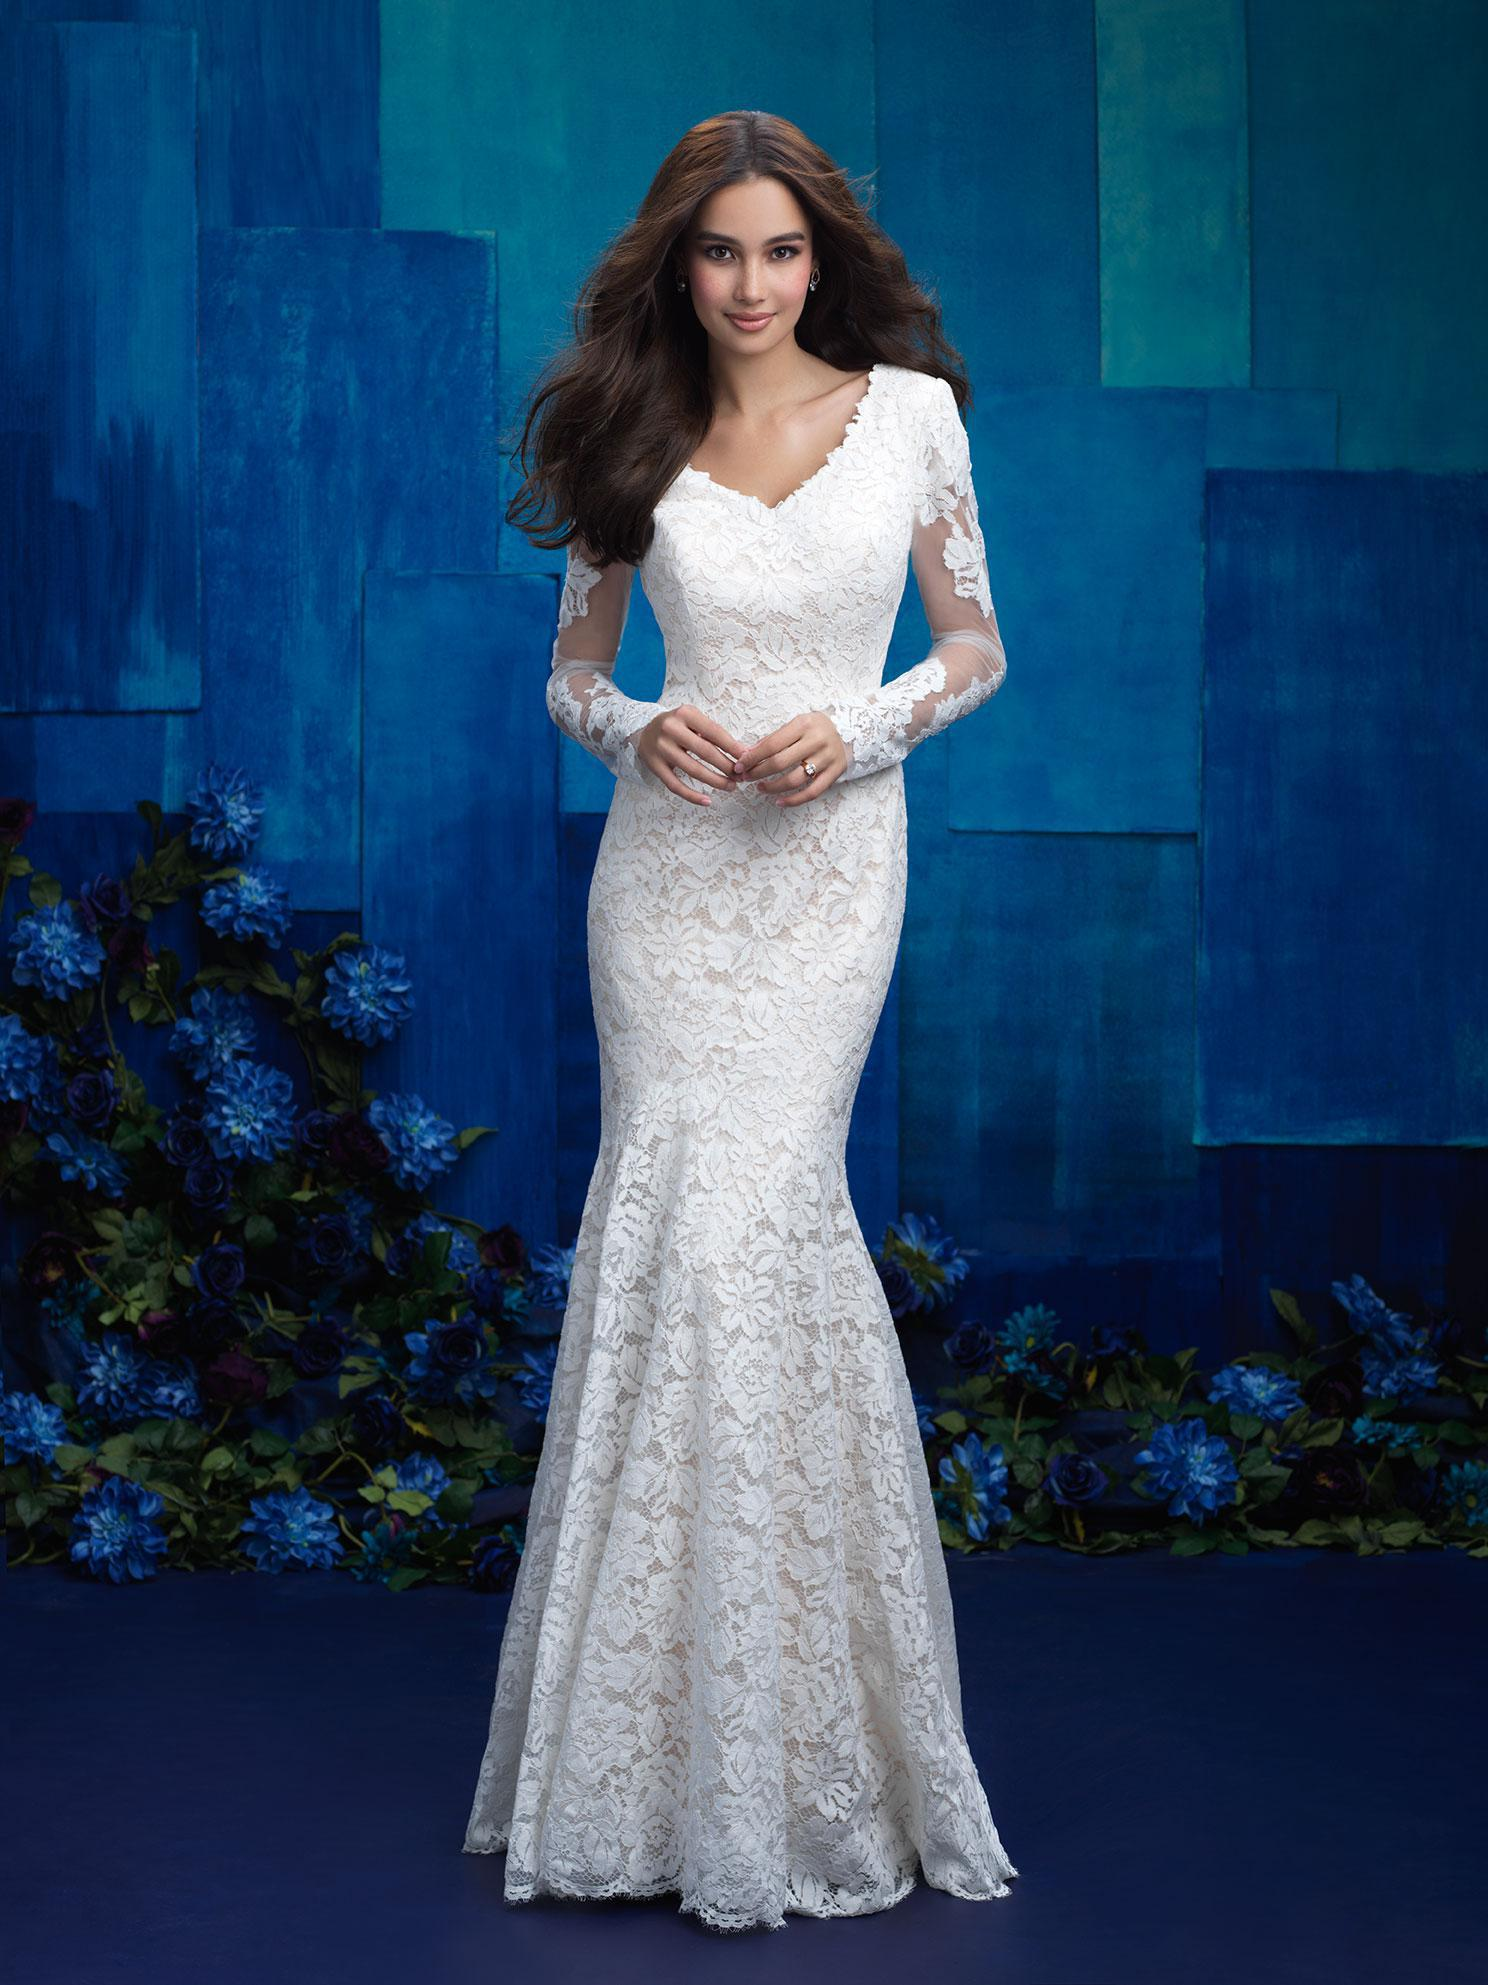 M571 Modest wedding dress long lace sleeves fit and flare design stunning chapel train LDS temple wedding dress